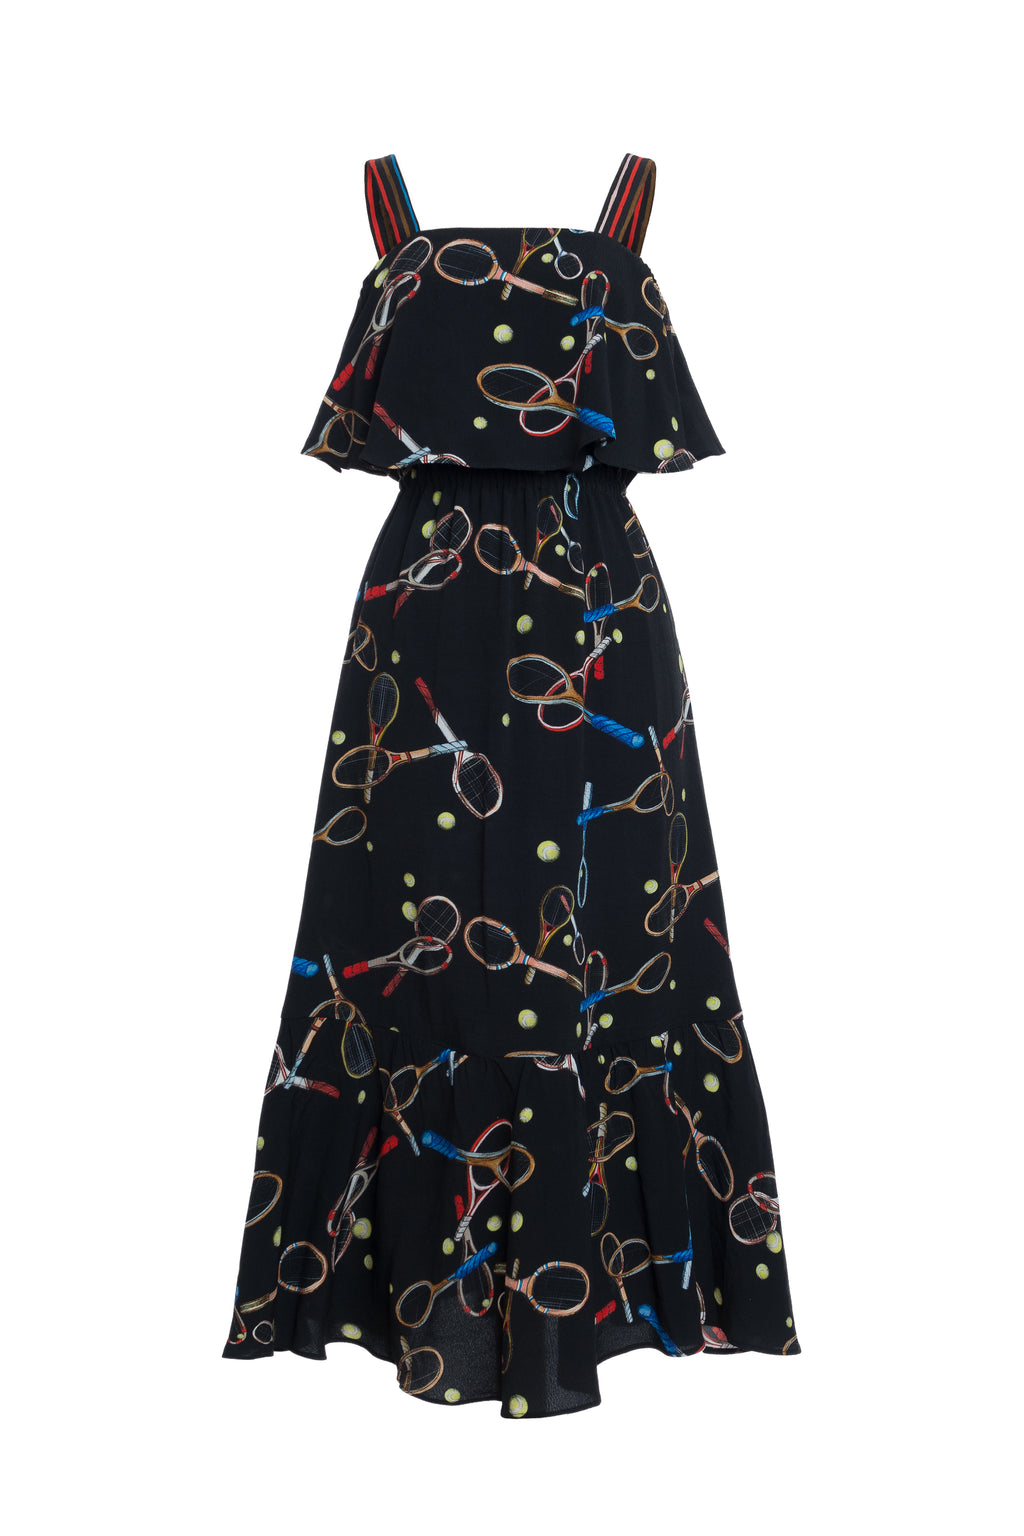 Totka Racket Print Ruffled Dress